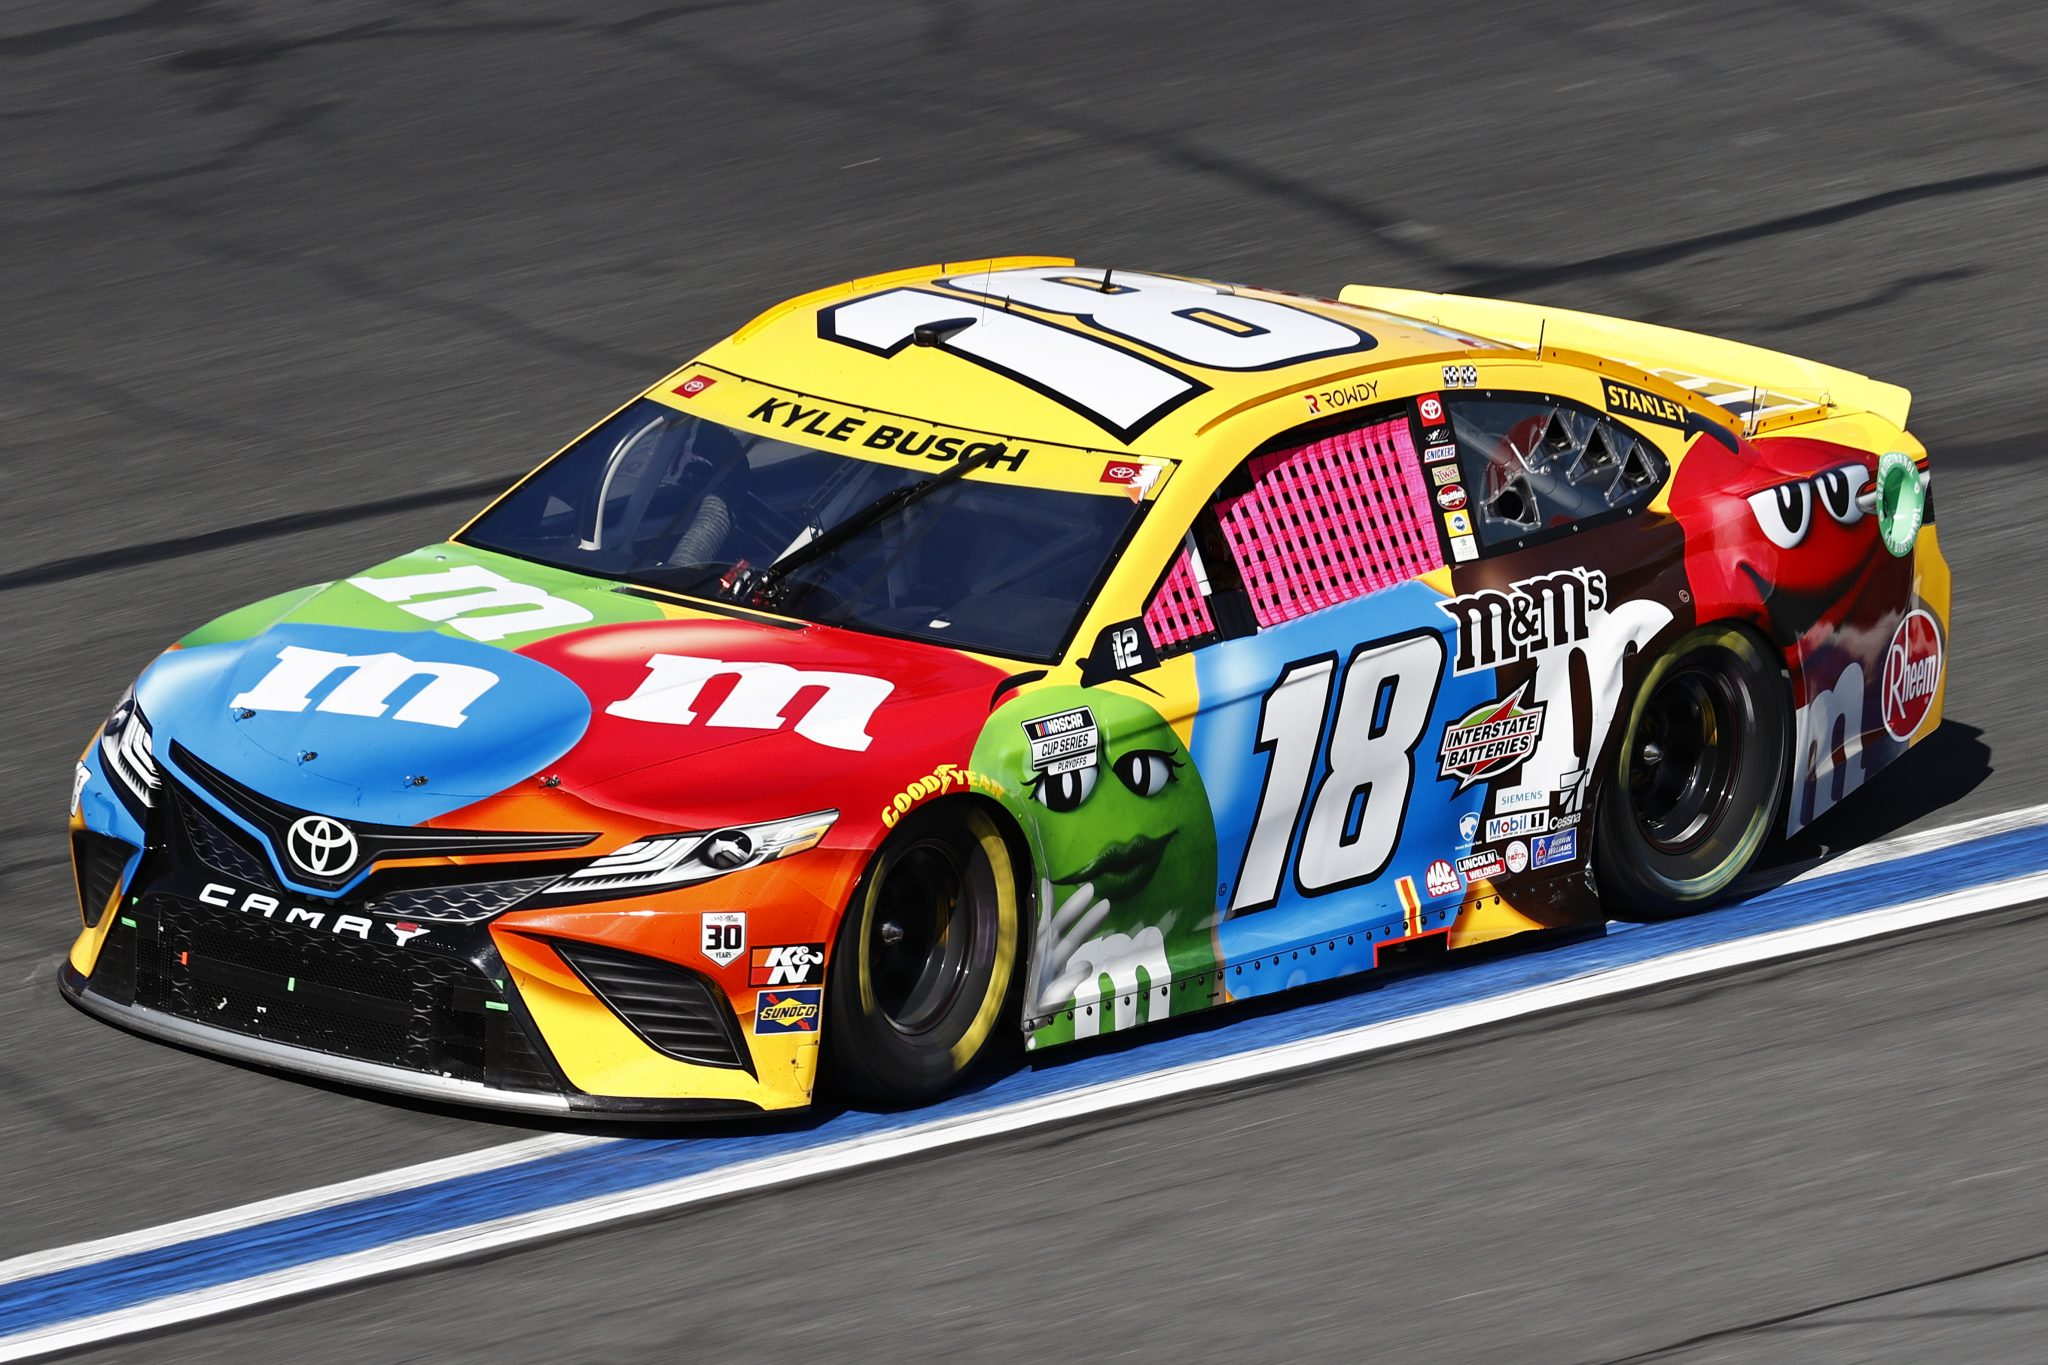 CONCORD, NORTH CAROLINA - OCTOBER 10: Kyle Busch, driver of the #18 M&M's Toyota, drives during the NASCAR Cup Series Bank of America ROVAL 400 at Charlotte Motor Speedway on October 10, 2021 in Concord, North Carolina. (Photo by Jared C. Tilton/Getty Images) | Getty Images